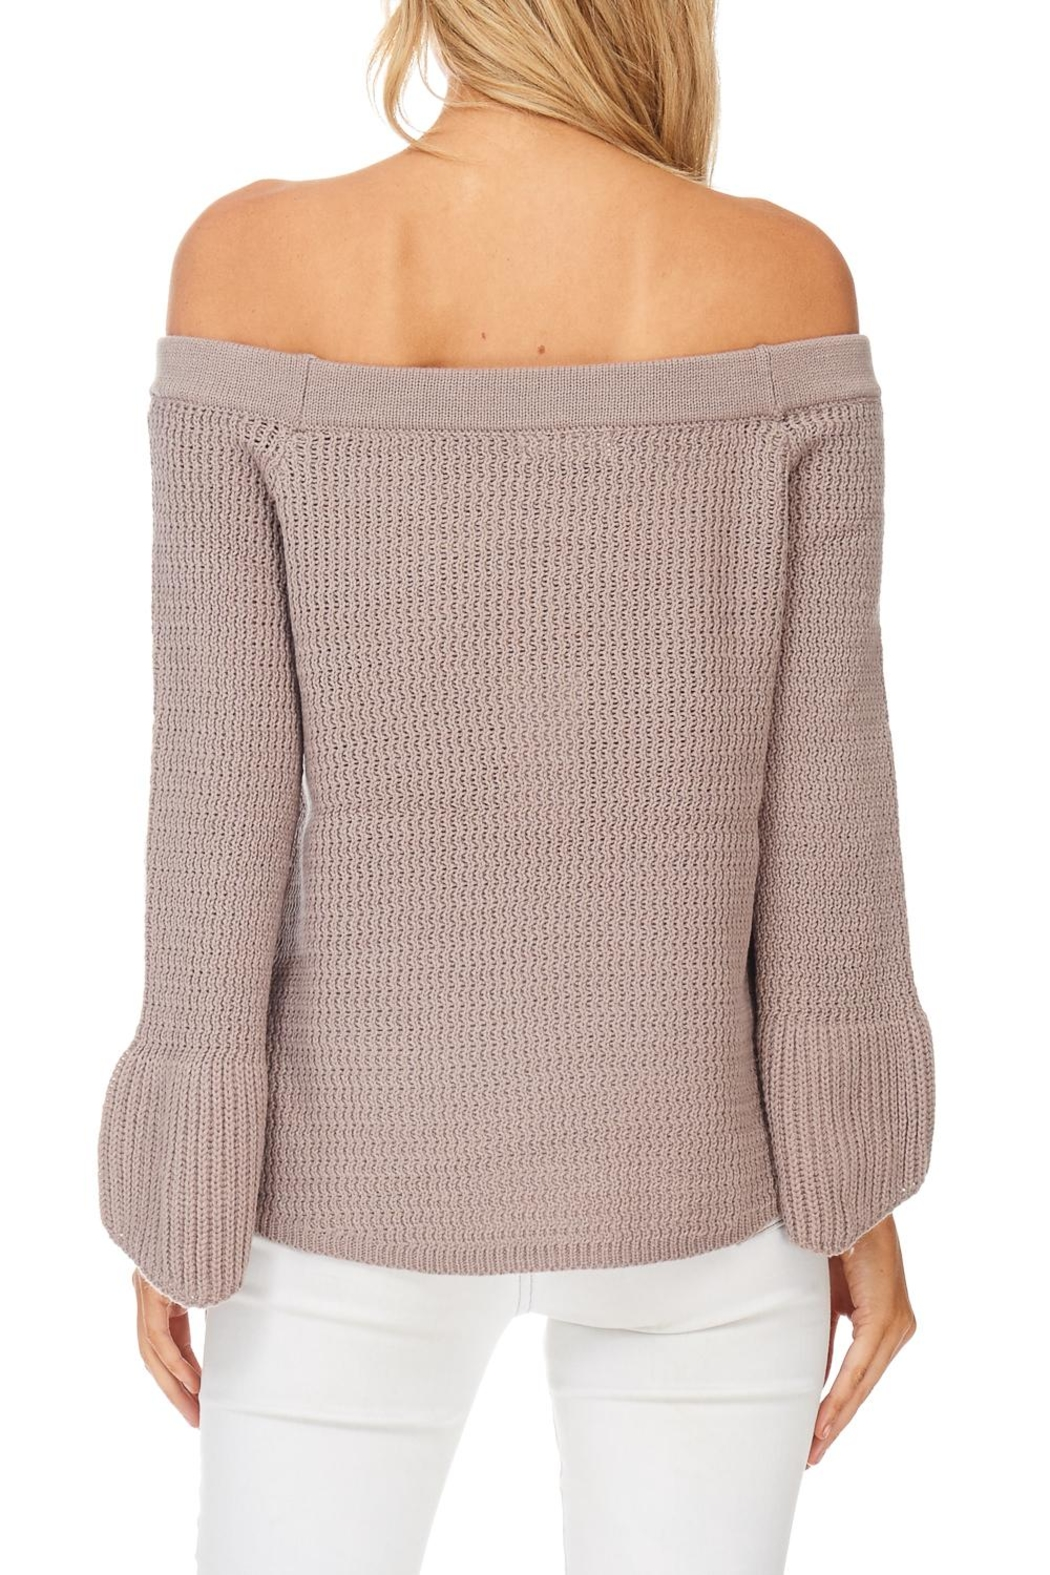 LoveRiche Taupe Off Shoulder Sweater - Back Cropped Image